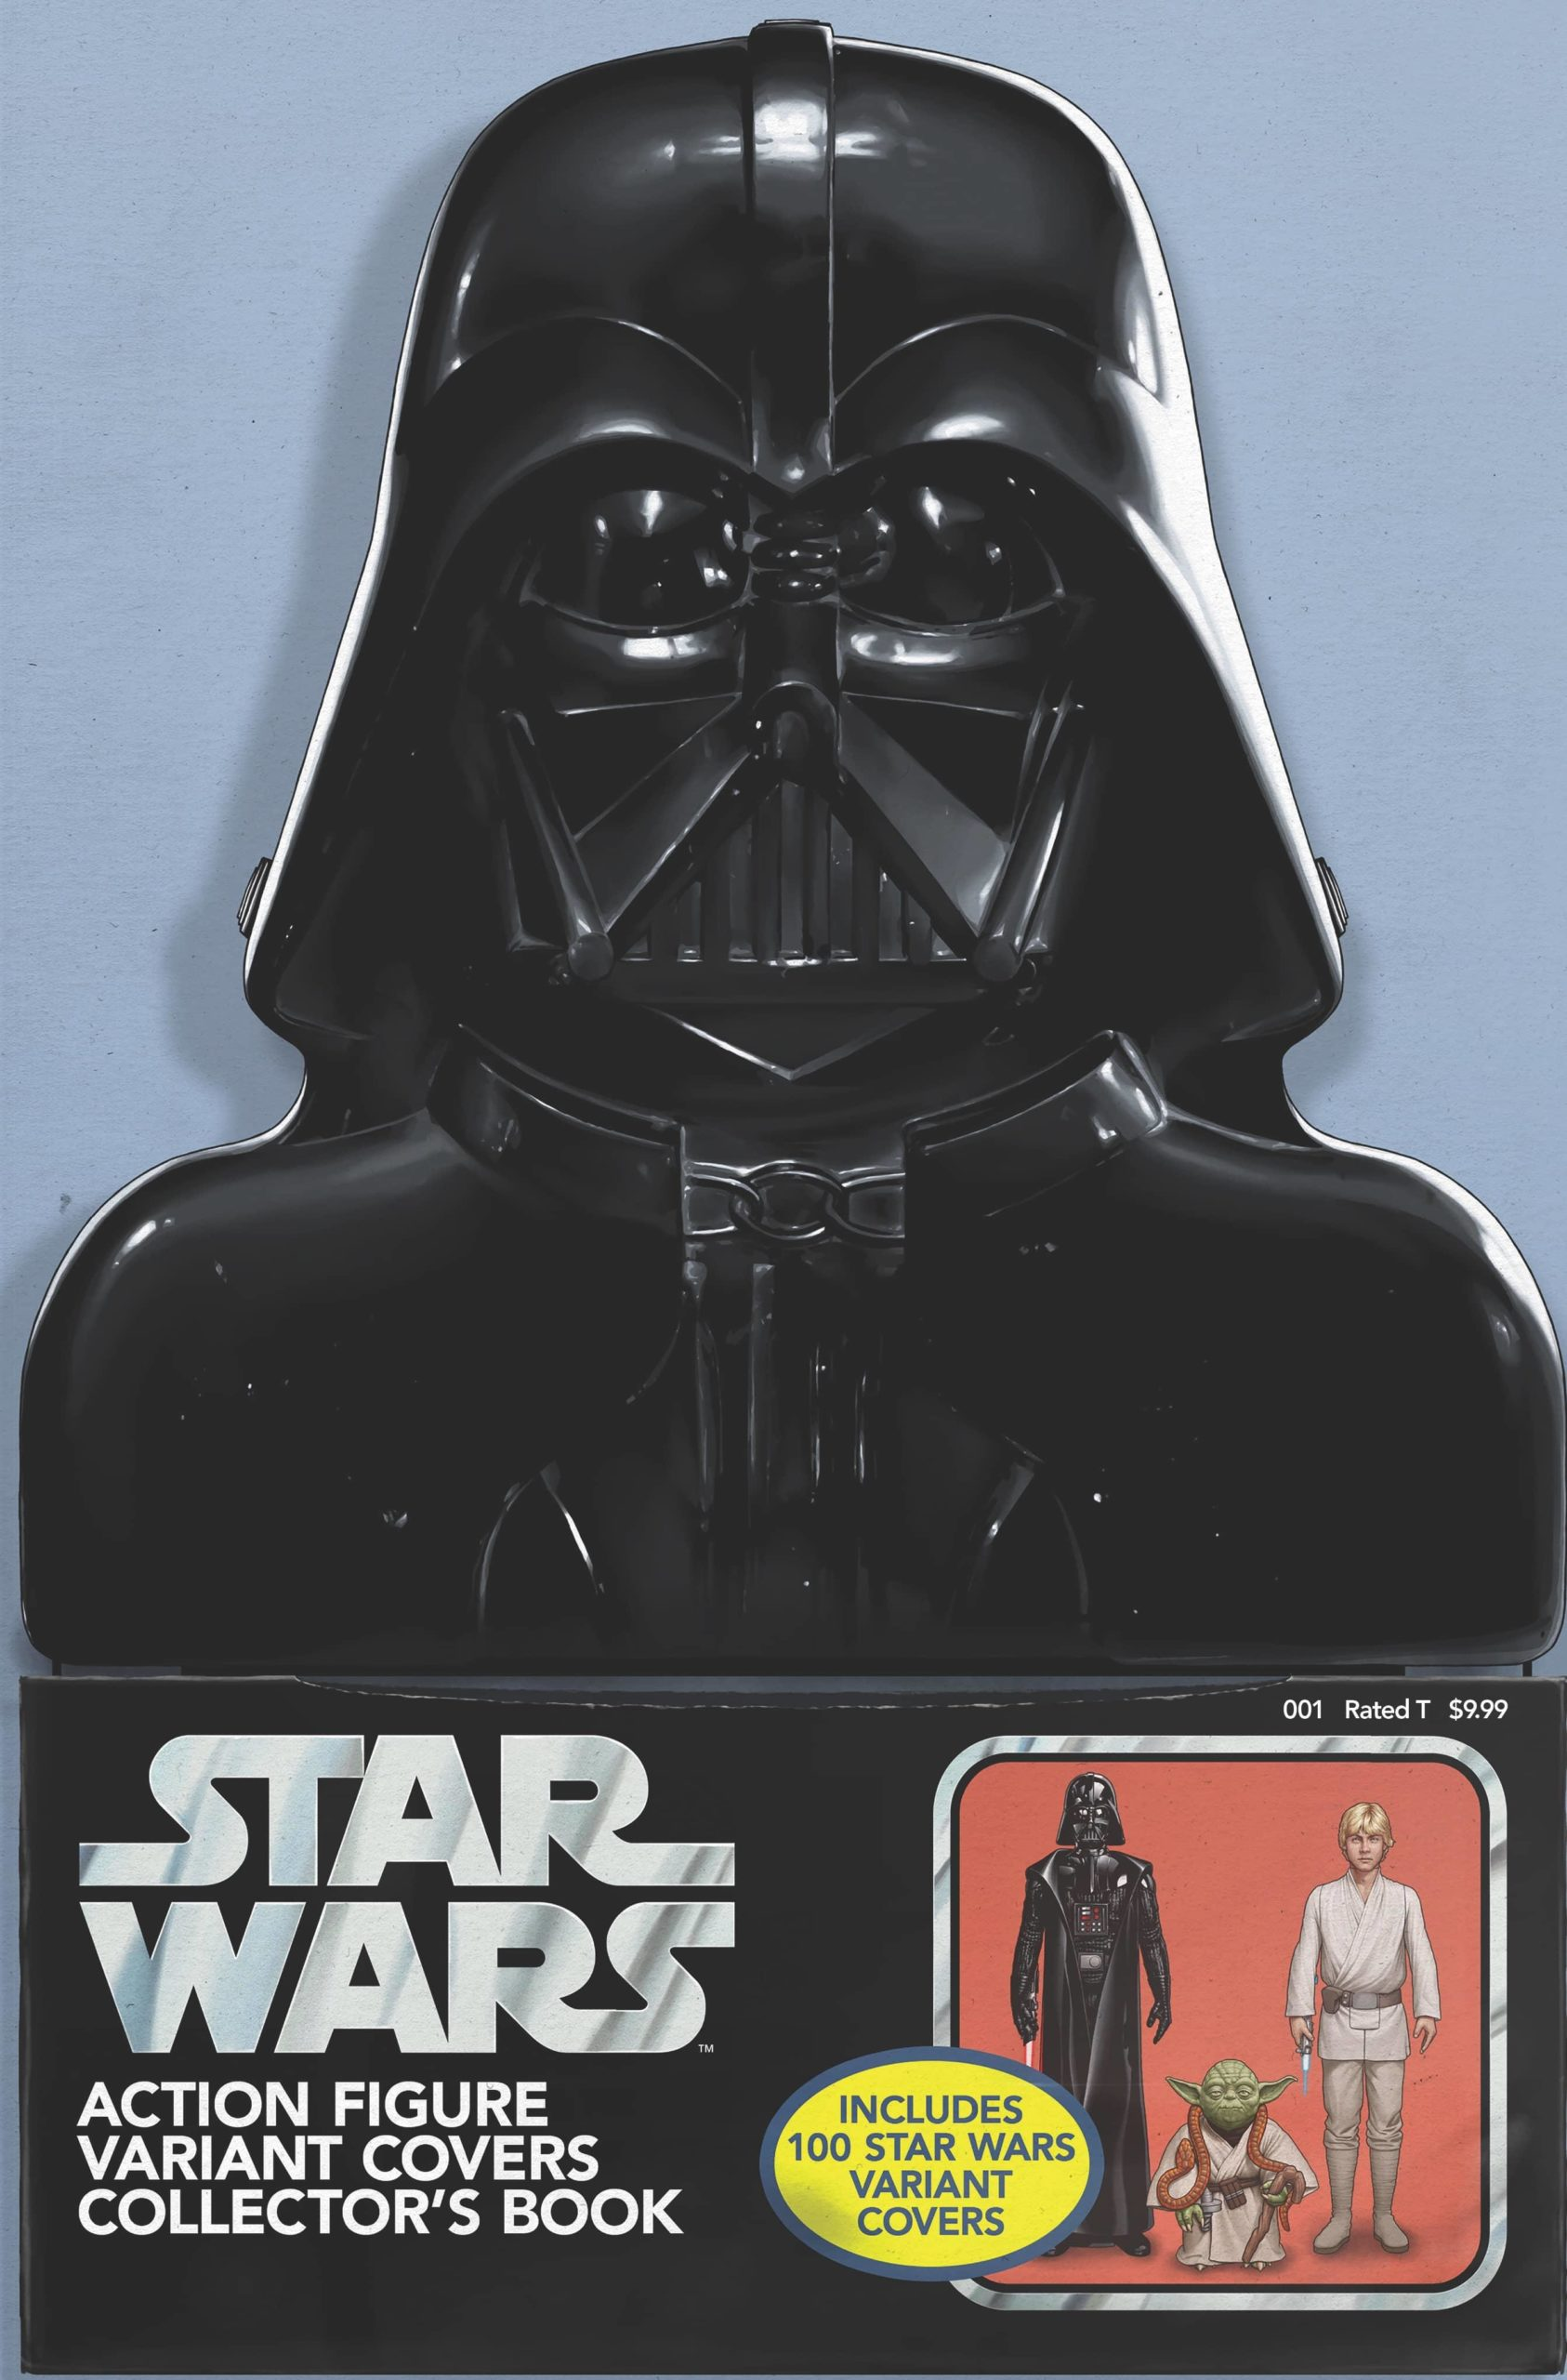 Star Wars: The Action Figure Variant Covers 1